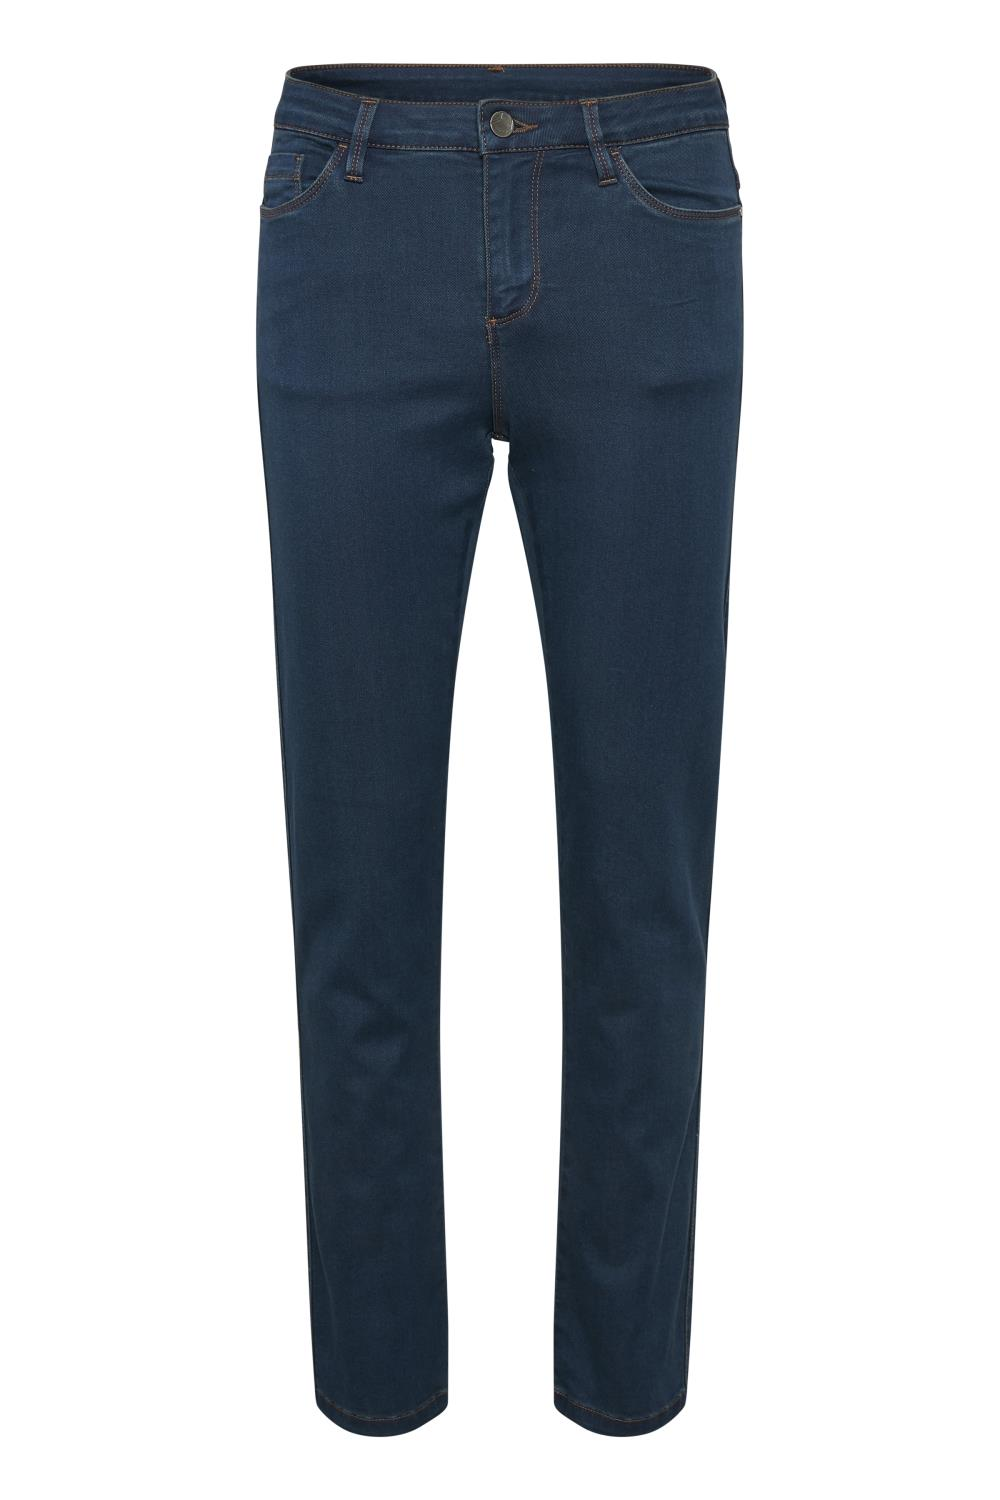 Kaffe Andy straight jeans, blue denim